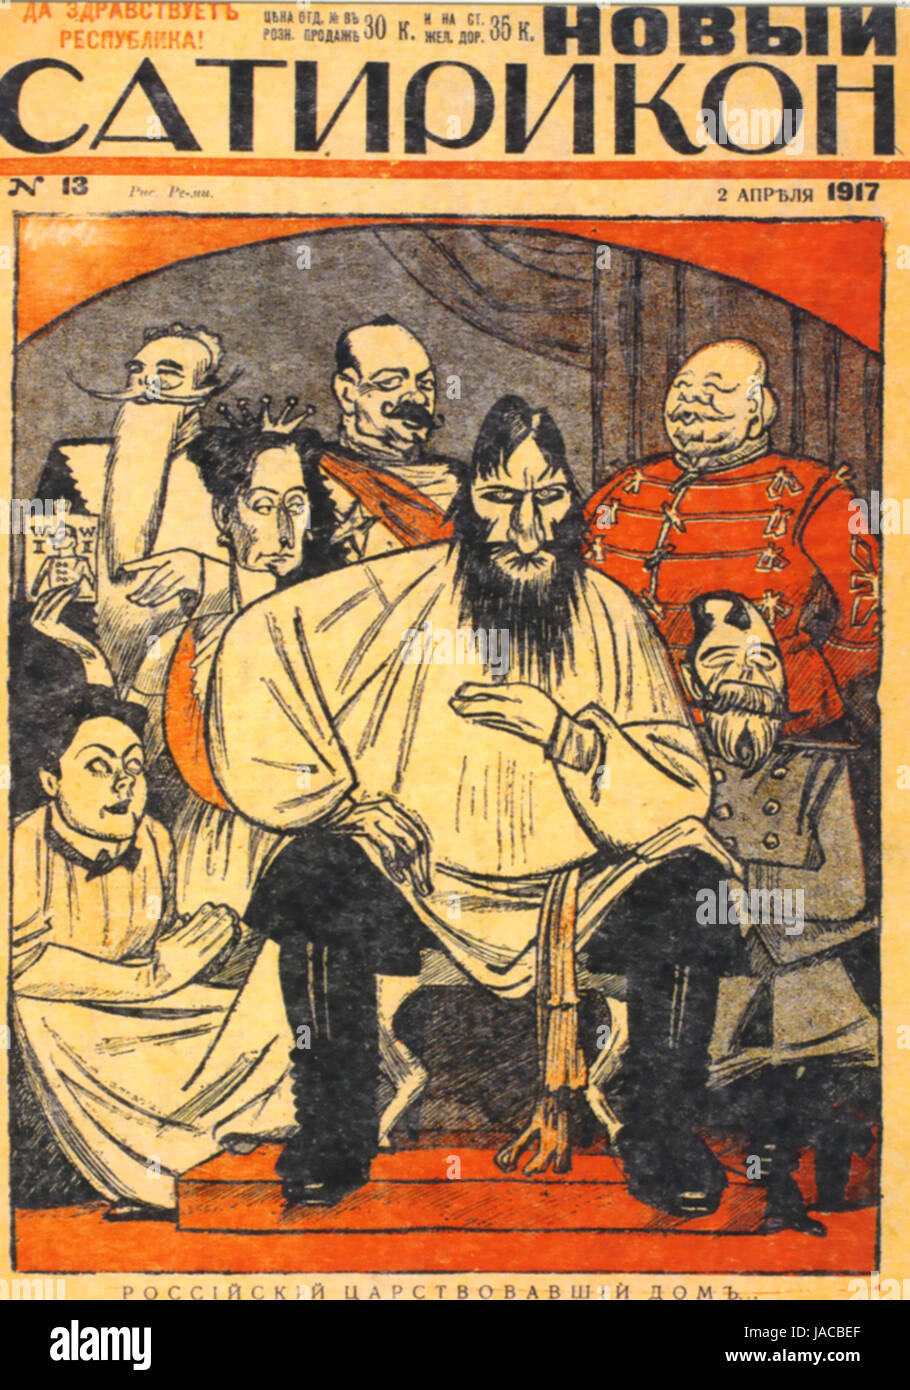 NEW SATIRICON MAGAZINE 2 April 1917. Caricature of Rasputin surrounded by the Tsar and Tsarina with military leaders - Stock Image